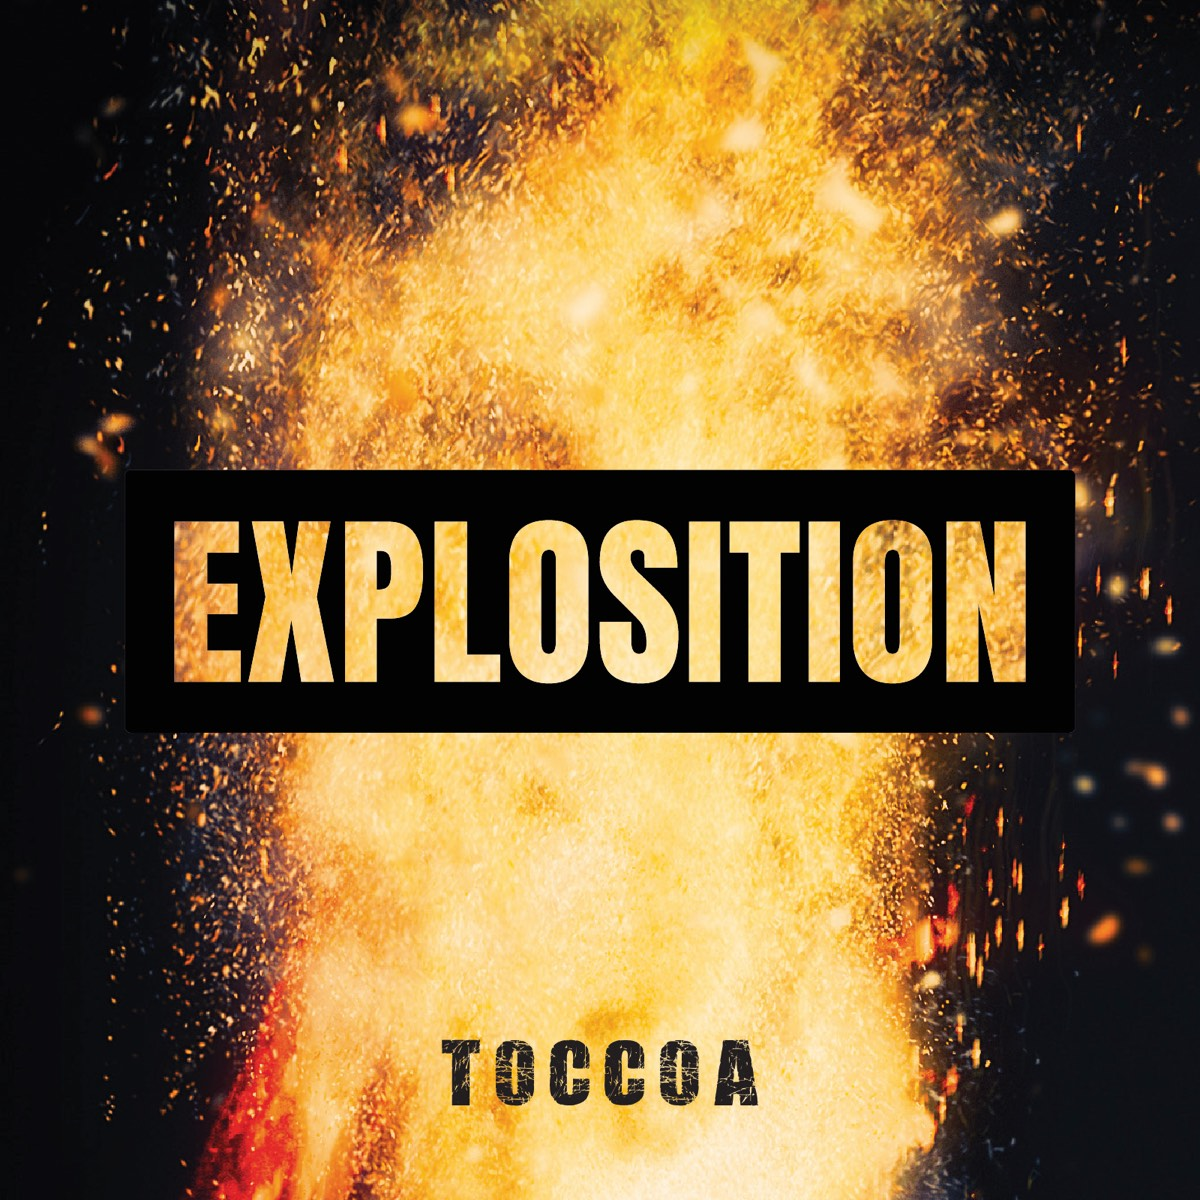 Toccoa Band Explosition